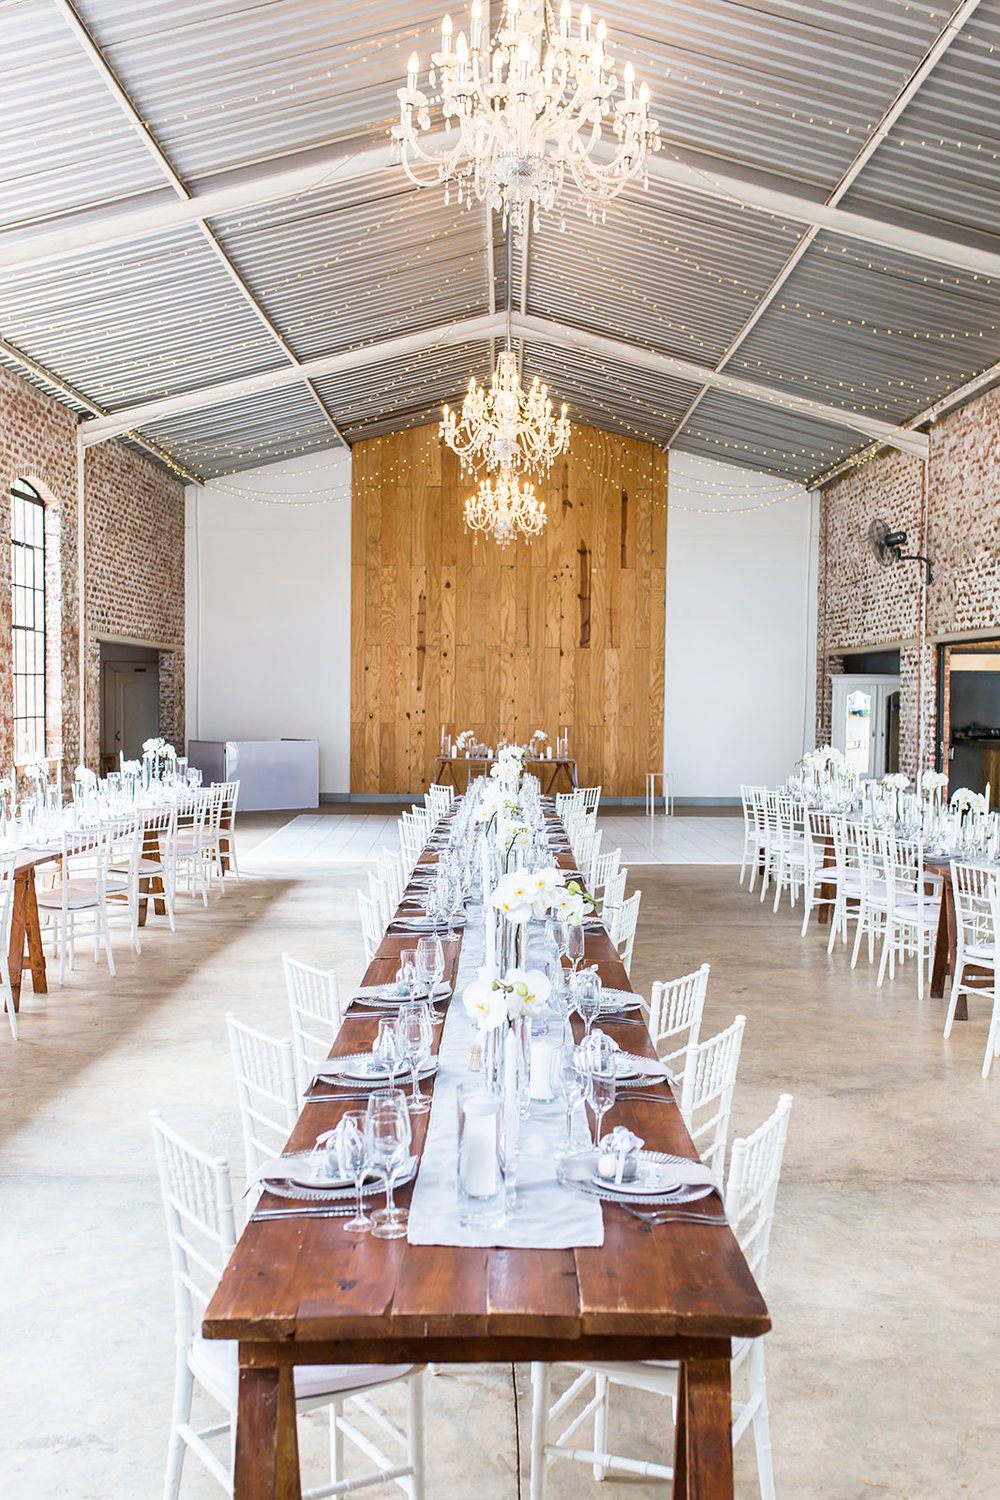 Lace on Timber Pretoria South Africa Wedding - The Overwhelmed Bride Wedding Blog